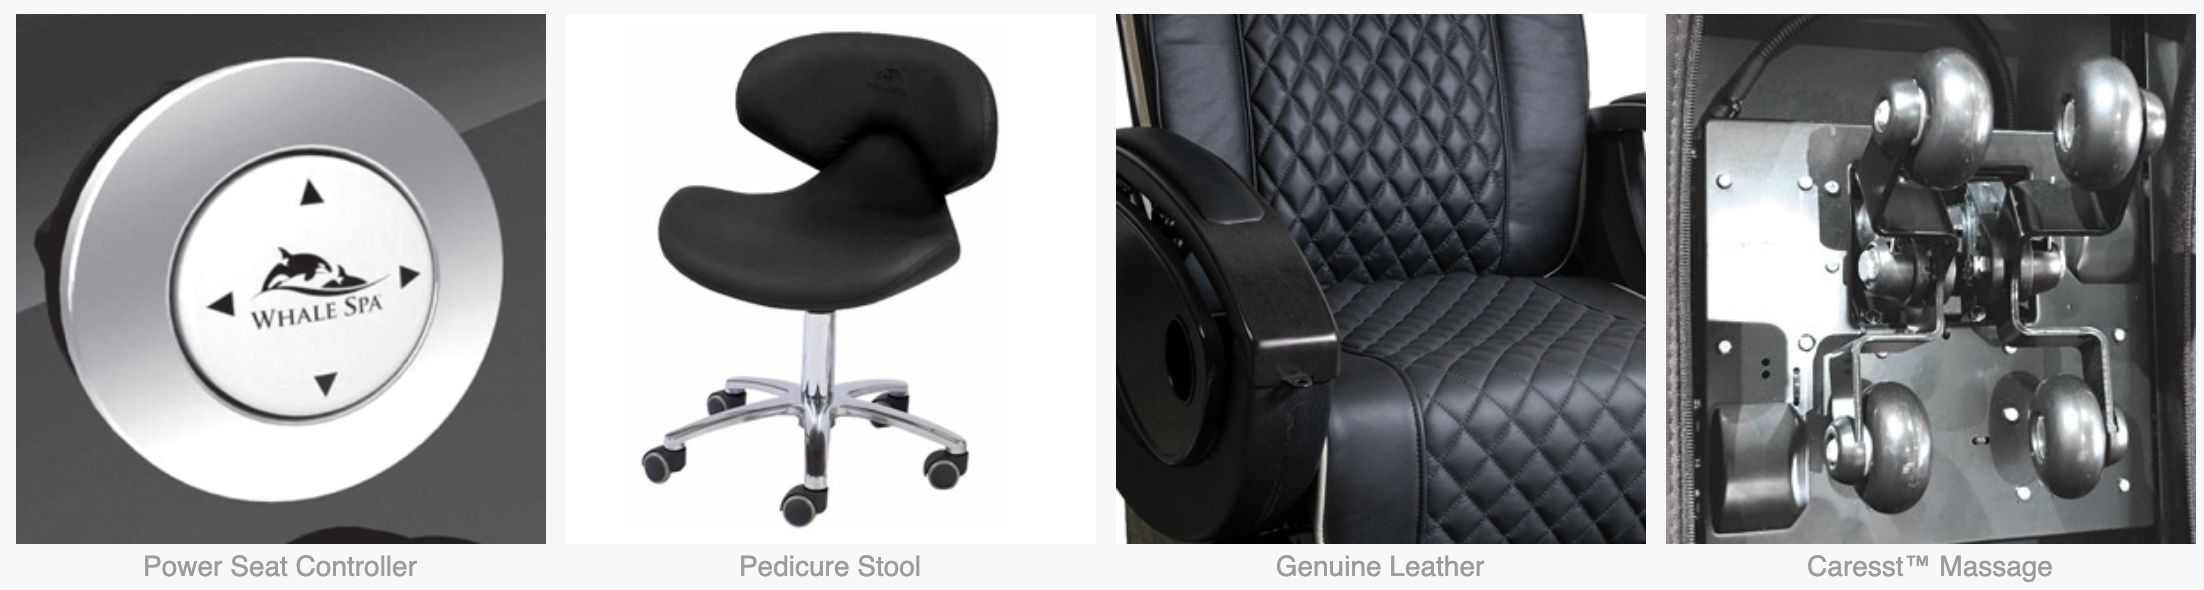 Alden Crystal Pedicure Chair SPAALCR Whale Spa